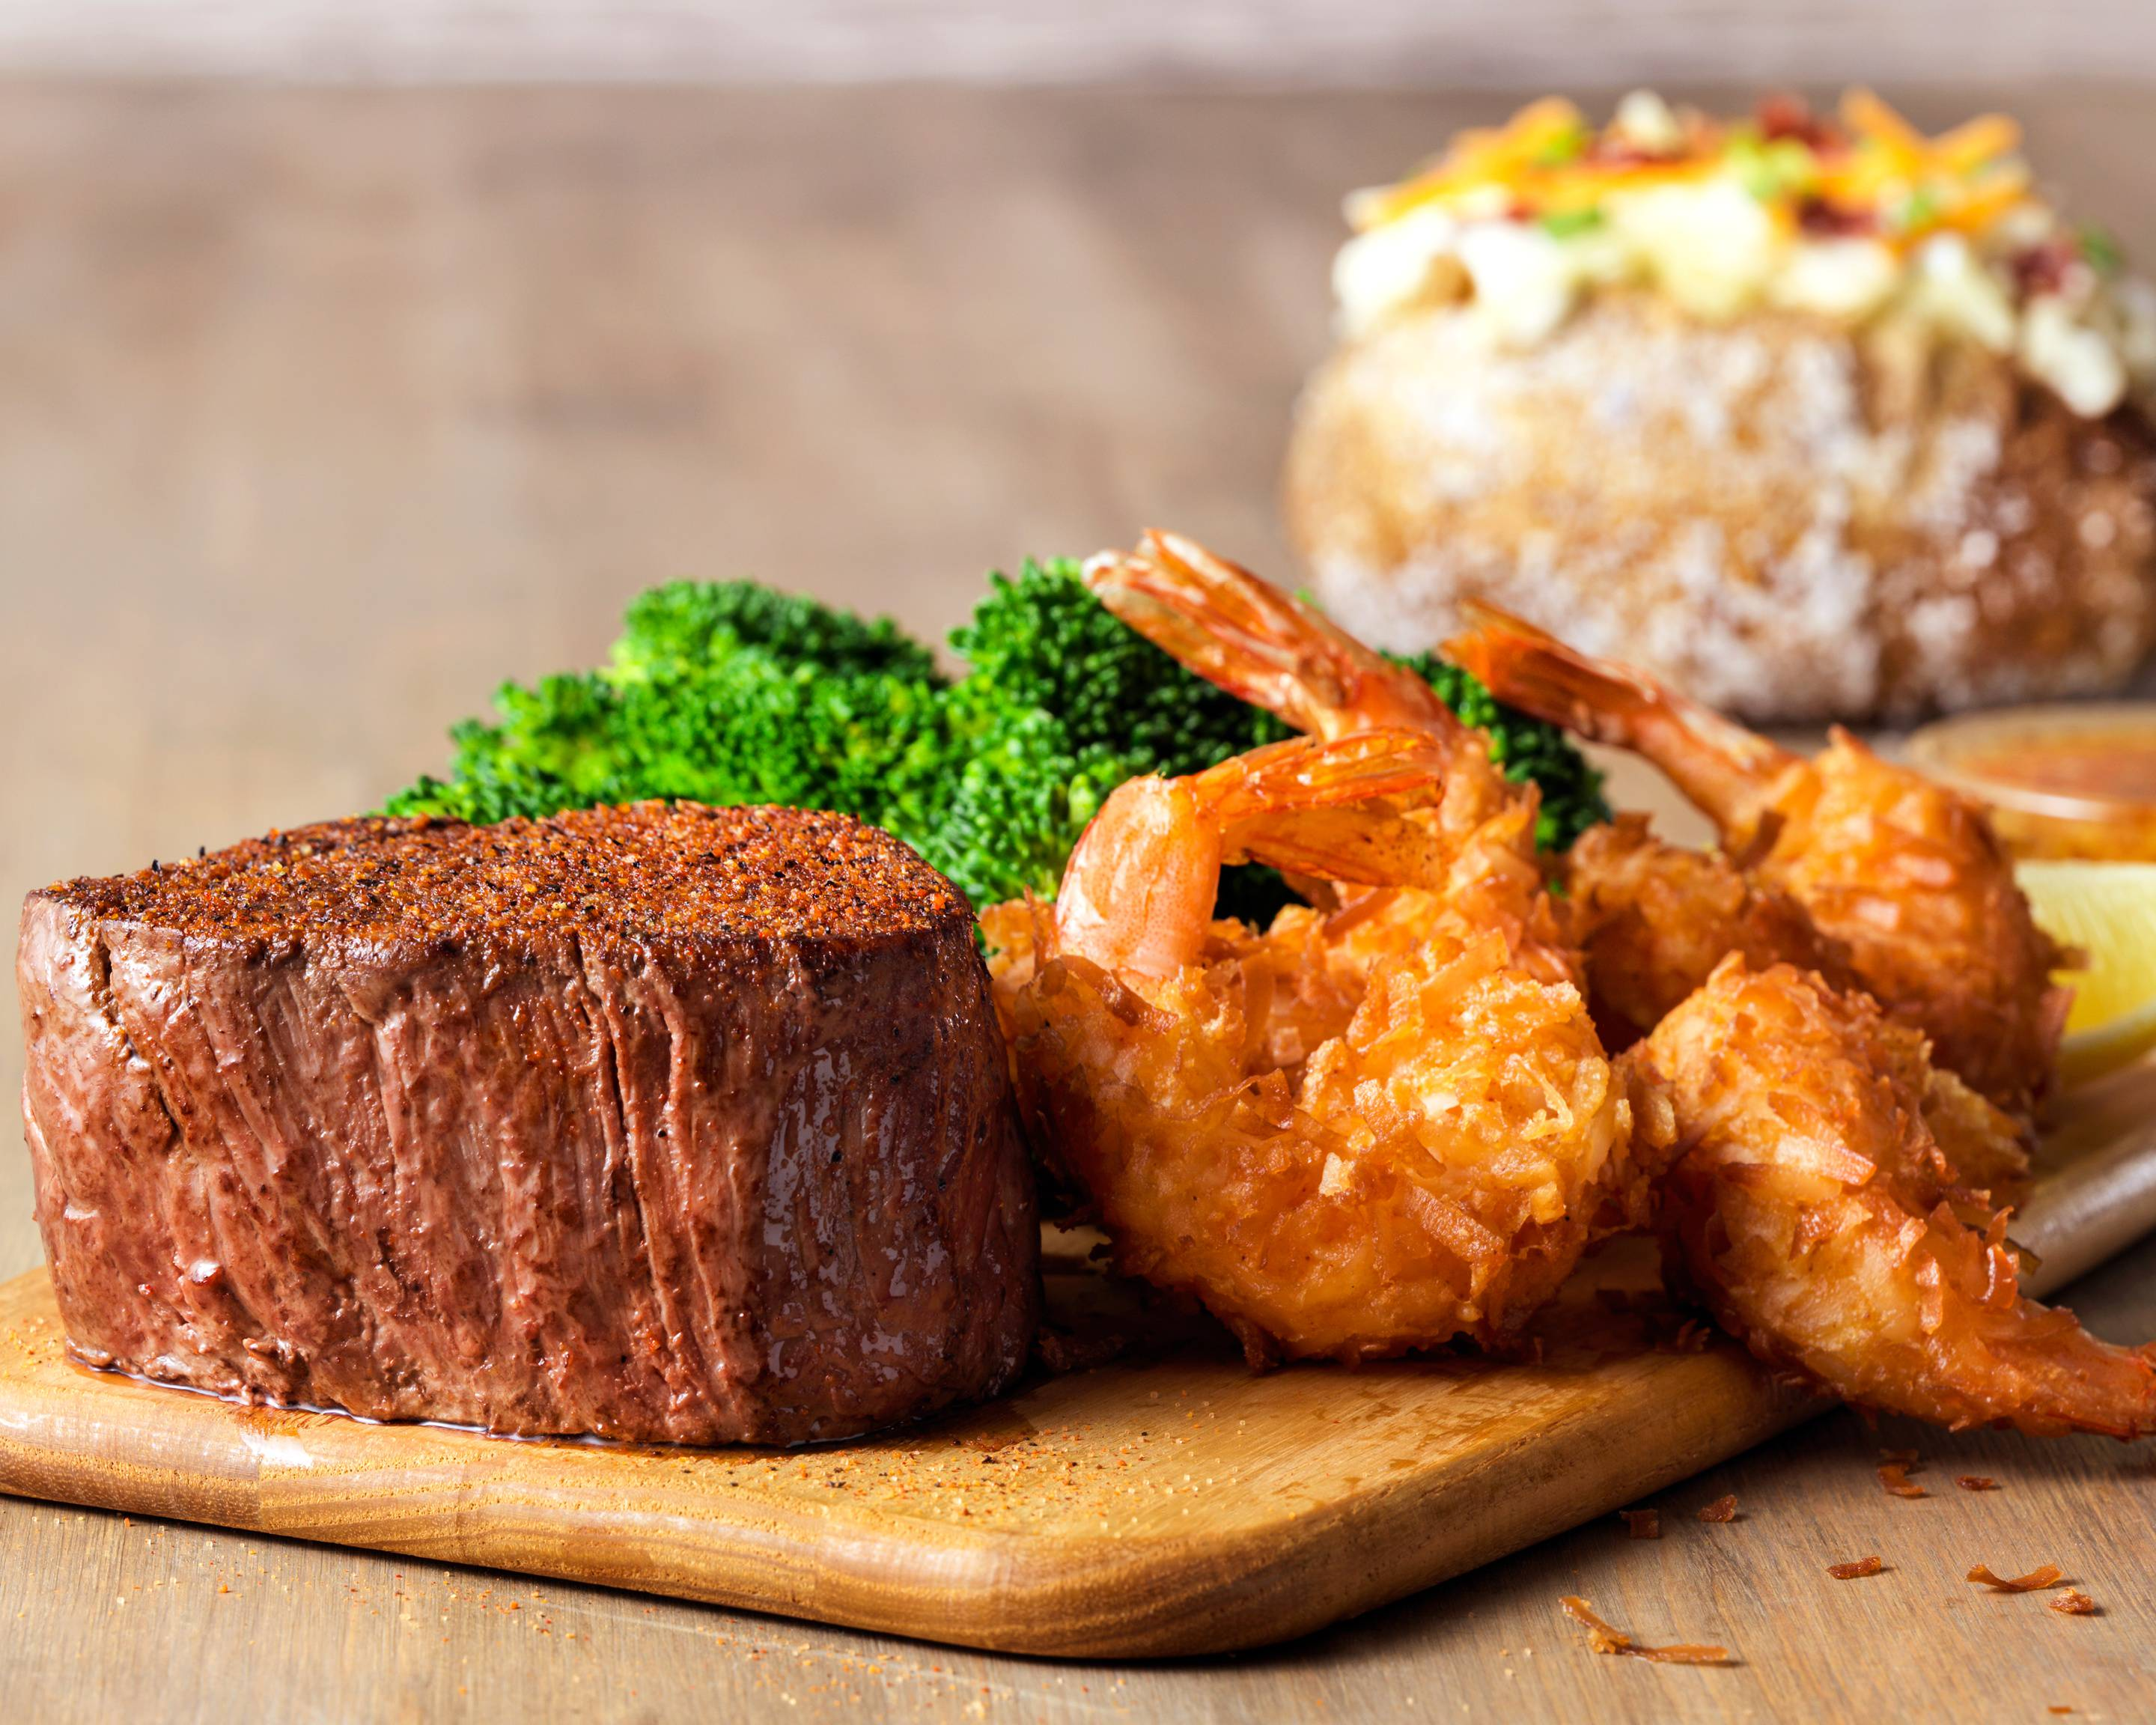 order outback steakhouse 2020 brandon boulevard suite 190 delivery online tampa bay menu prices uber eats uber eats